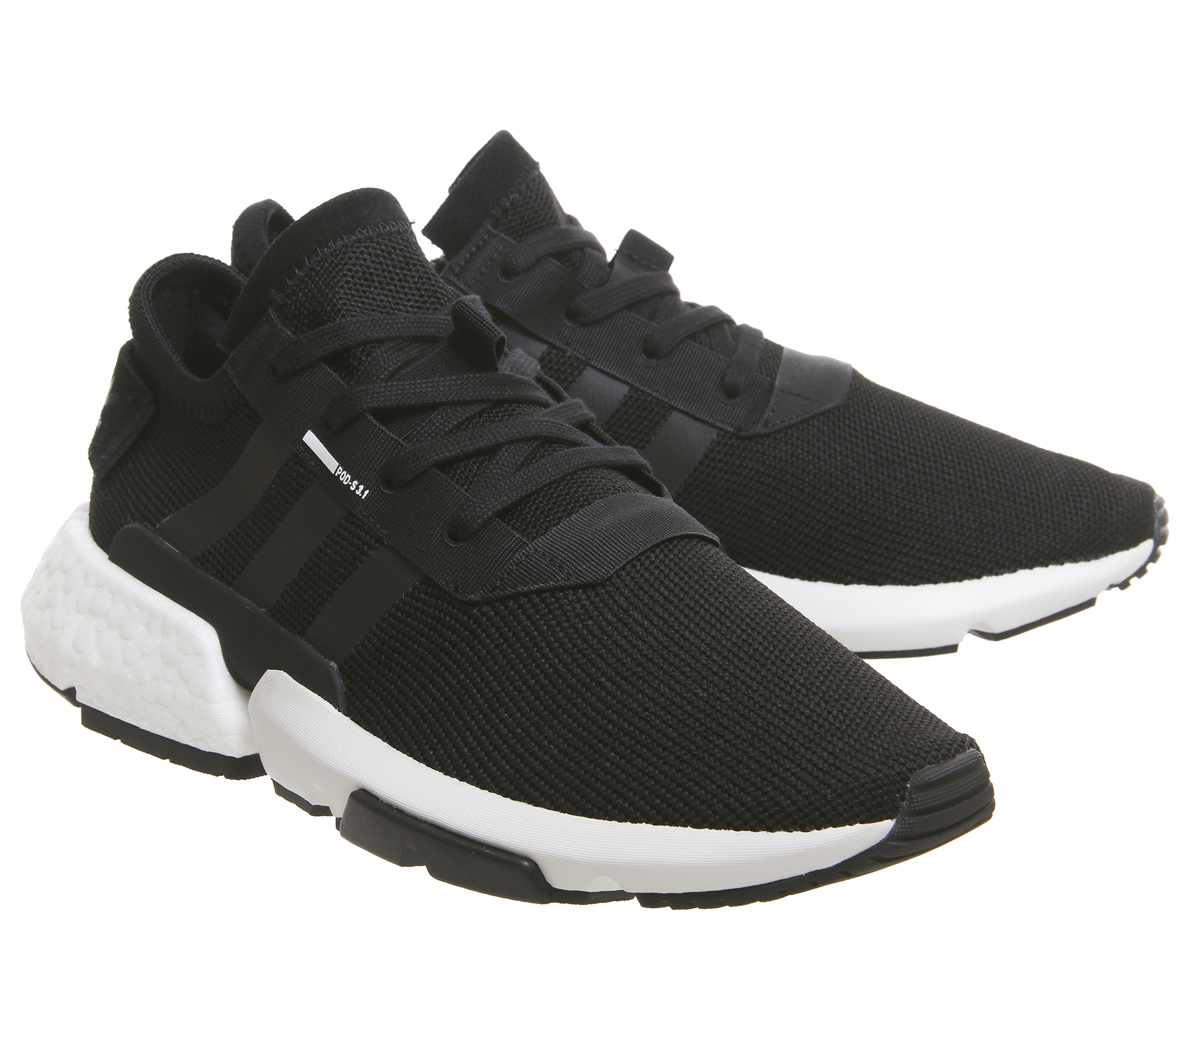 best website be1d8 7d36d Adidas-Pod-S3-1-Trainers-Black-White-Trainers-